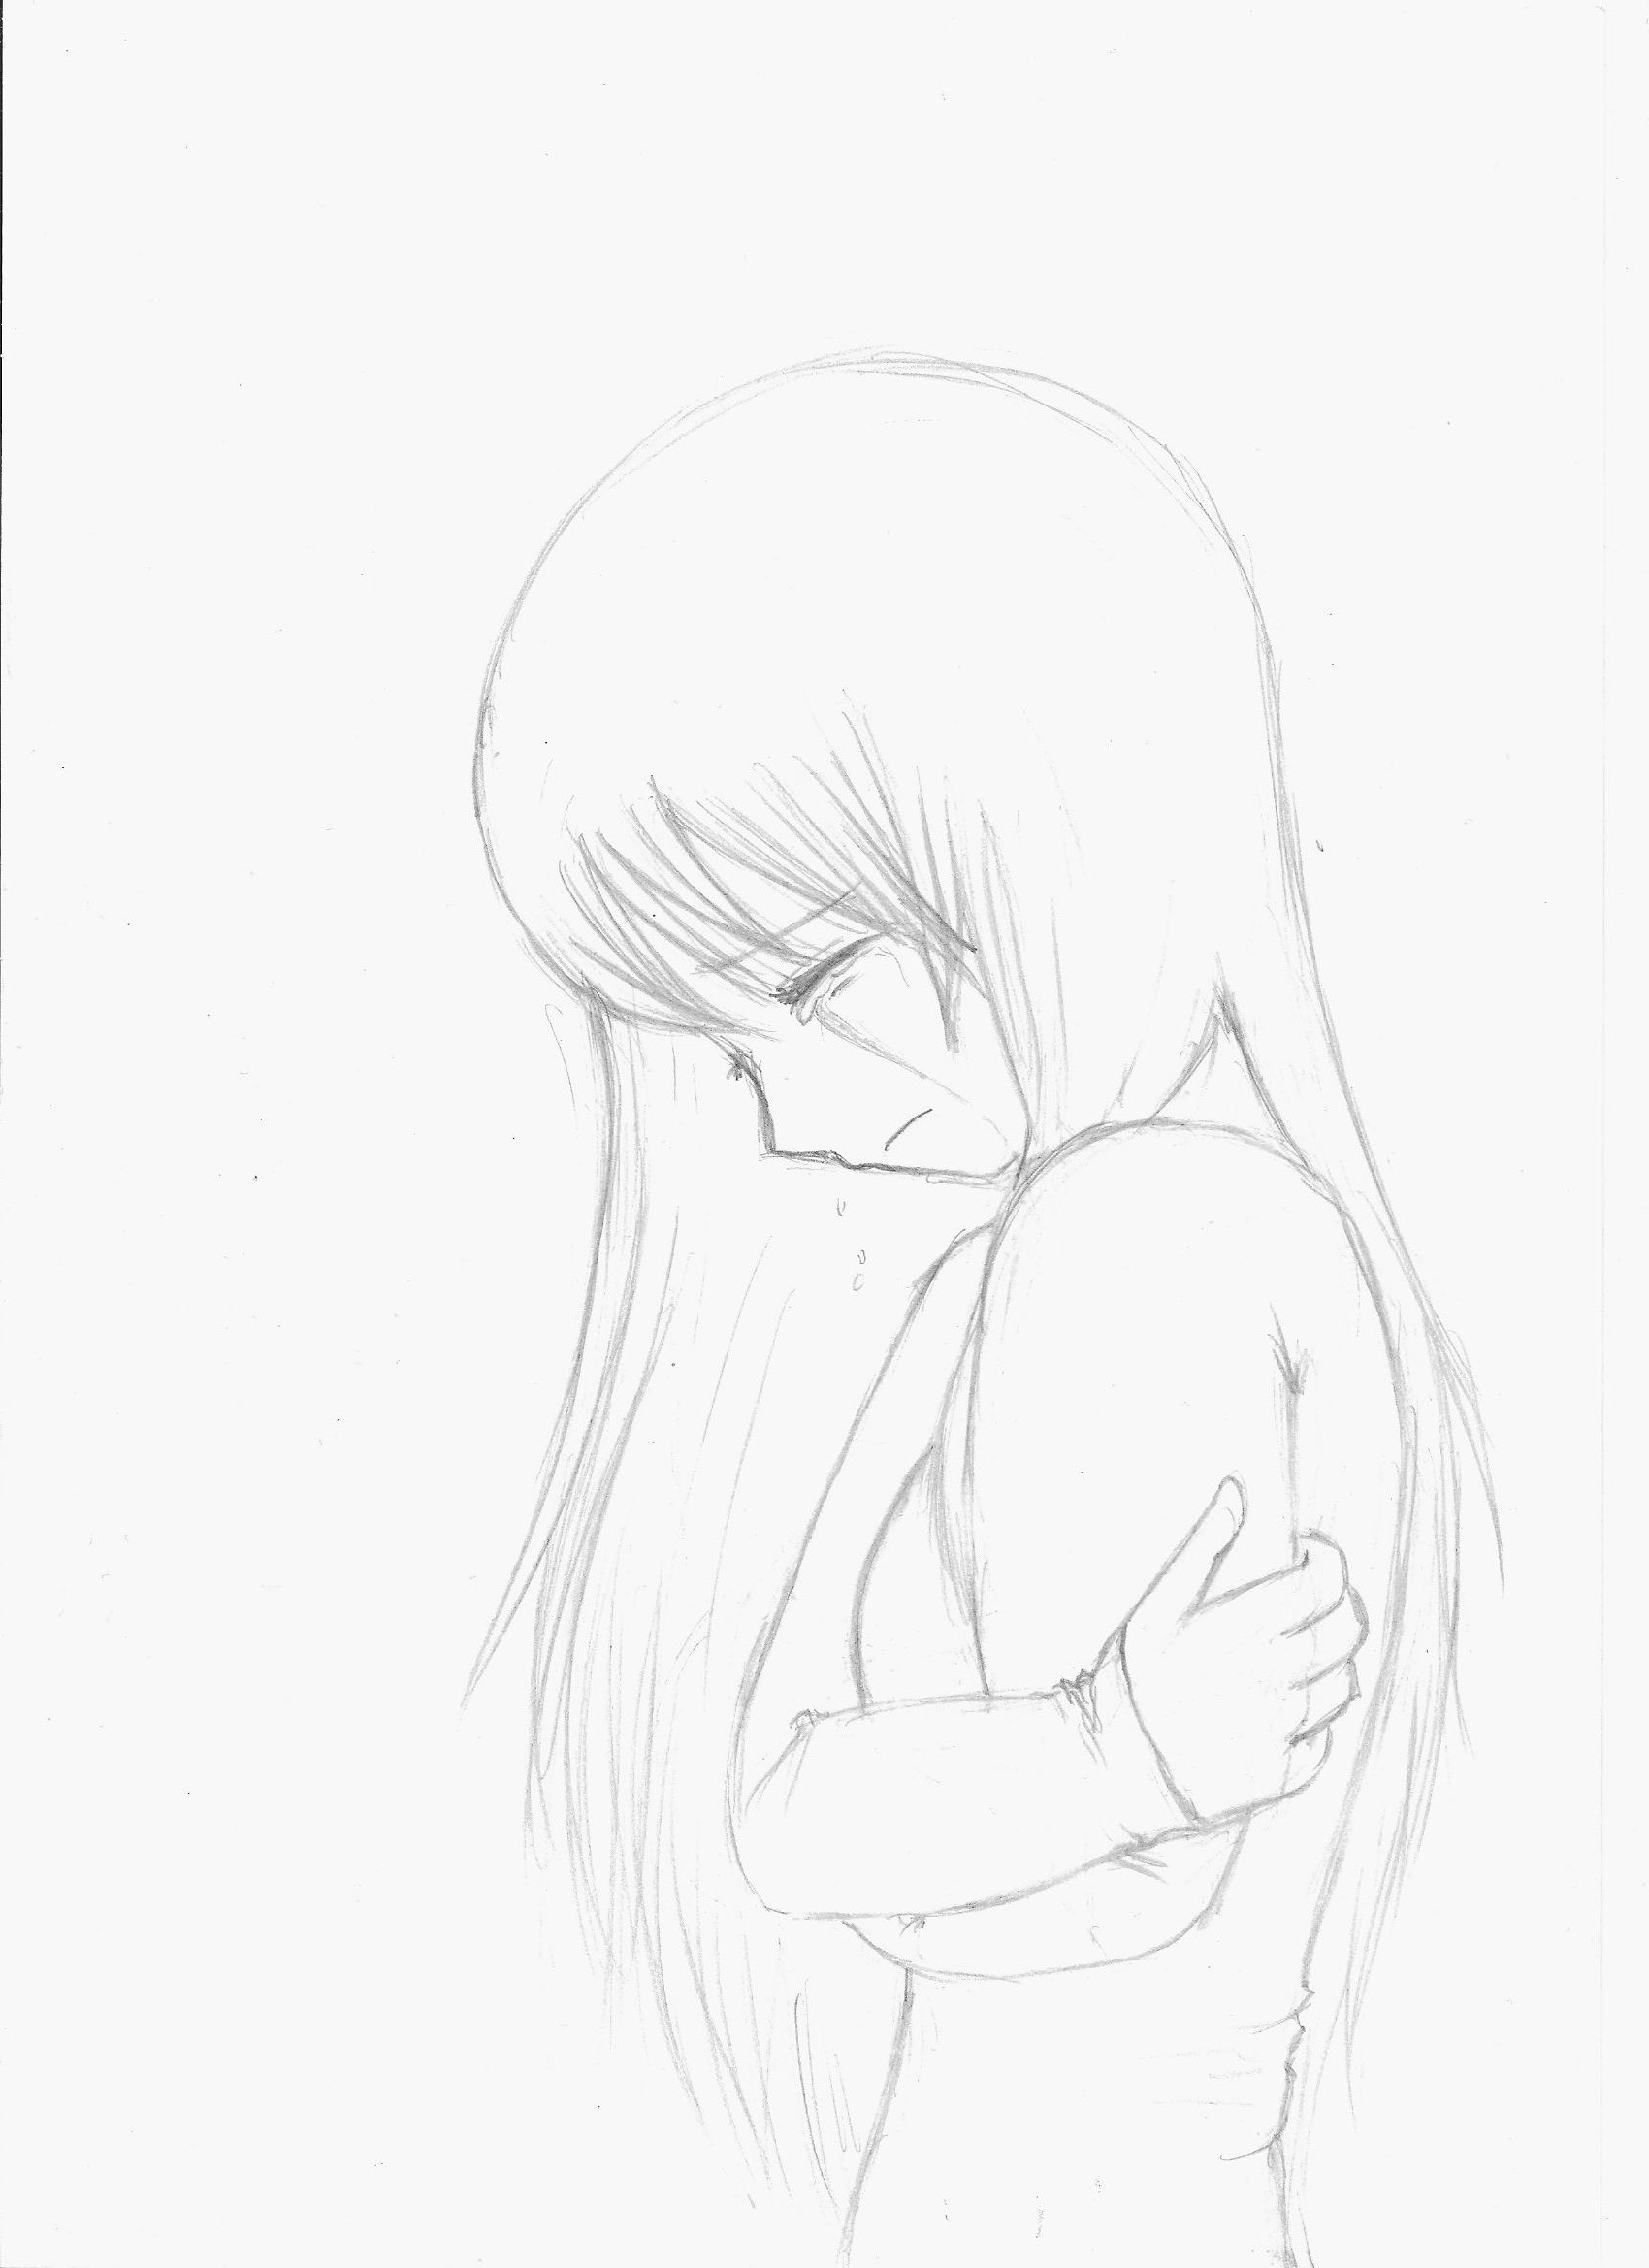 DeviantArt: More Like anime girl crying crossed arms [sketch] by ...